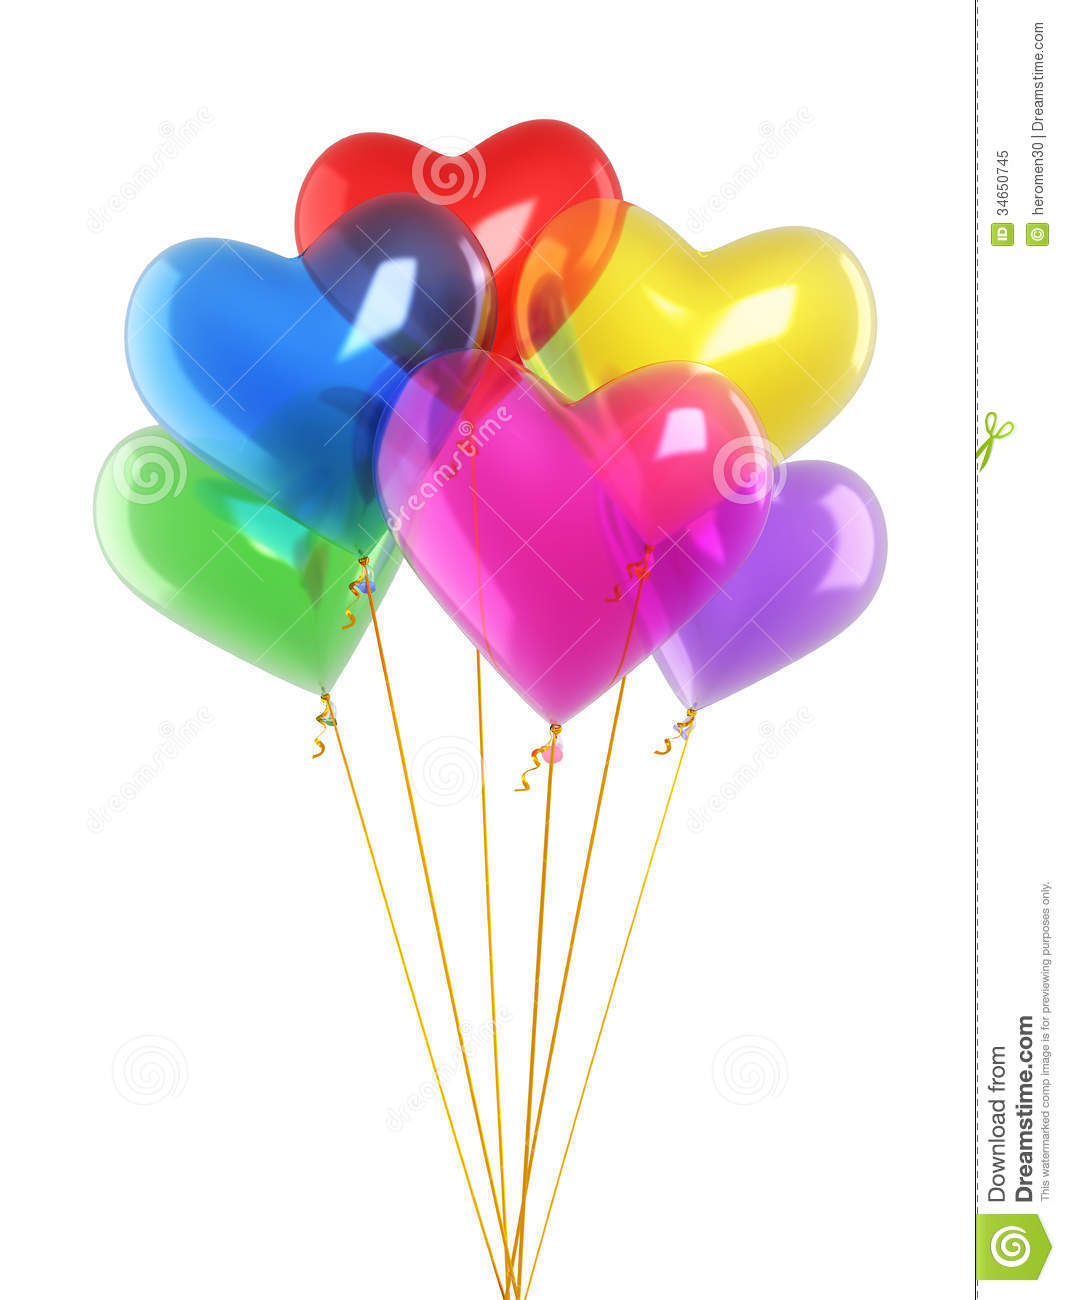 Colorful Heart Balloons Royalty Free Stock Photo - Image: 34650745